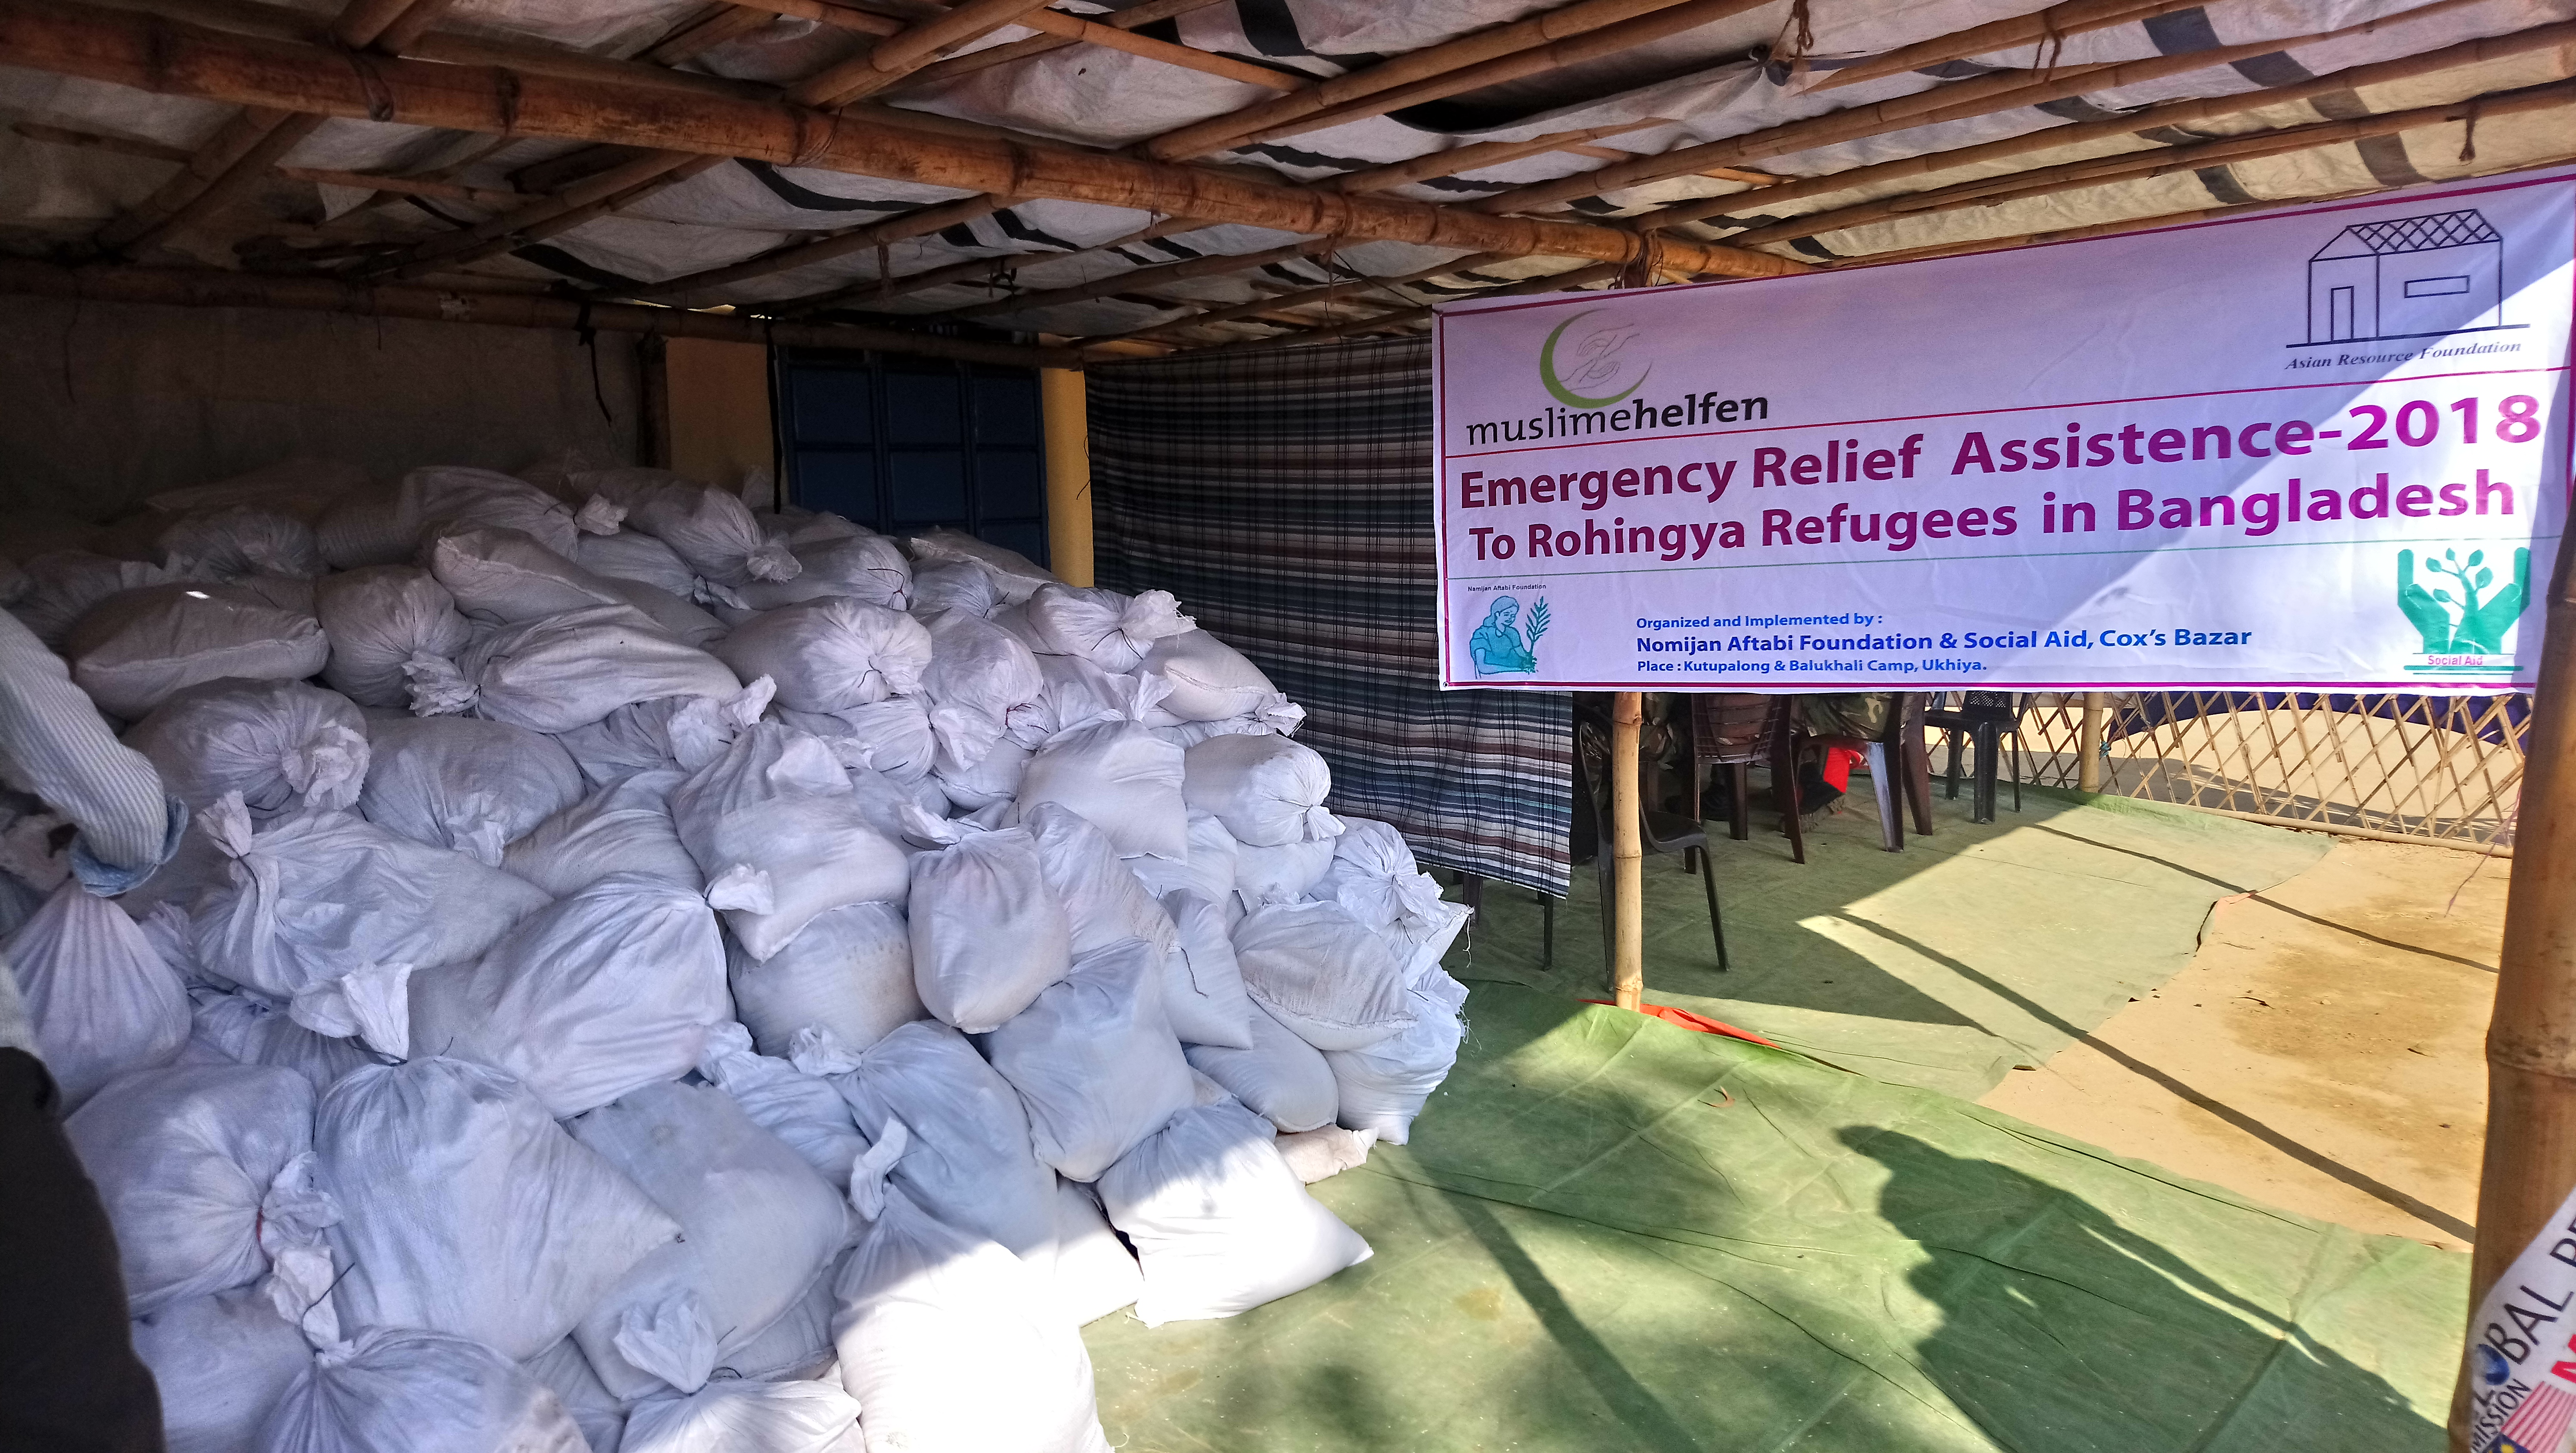 01 Monthly food assistance in the Rohingya Refugee Camps, Cox's Bazar, Bangladesh